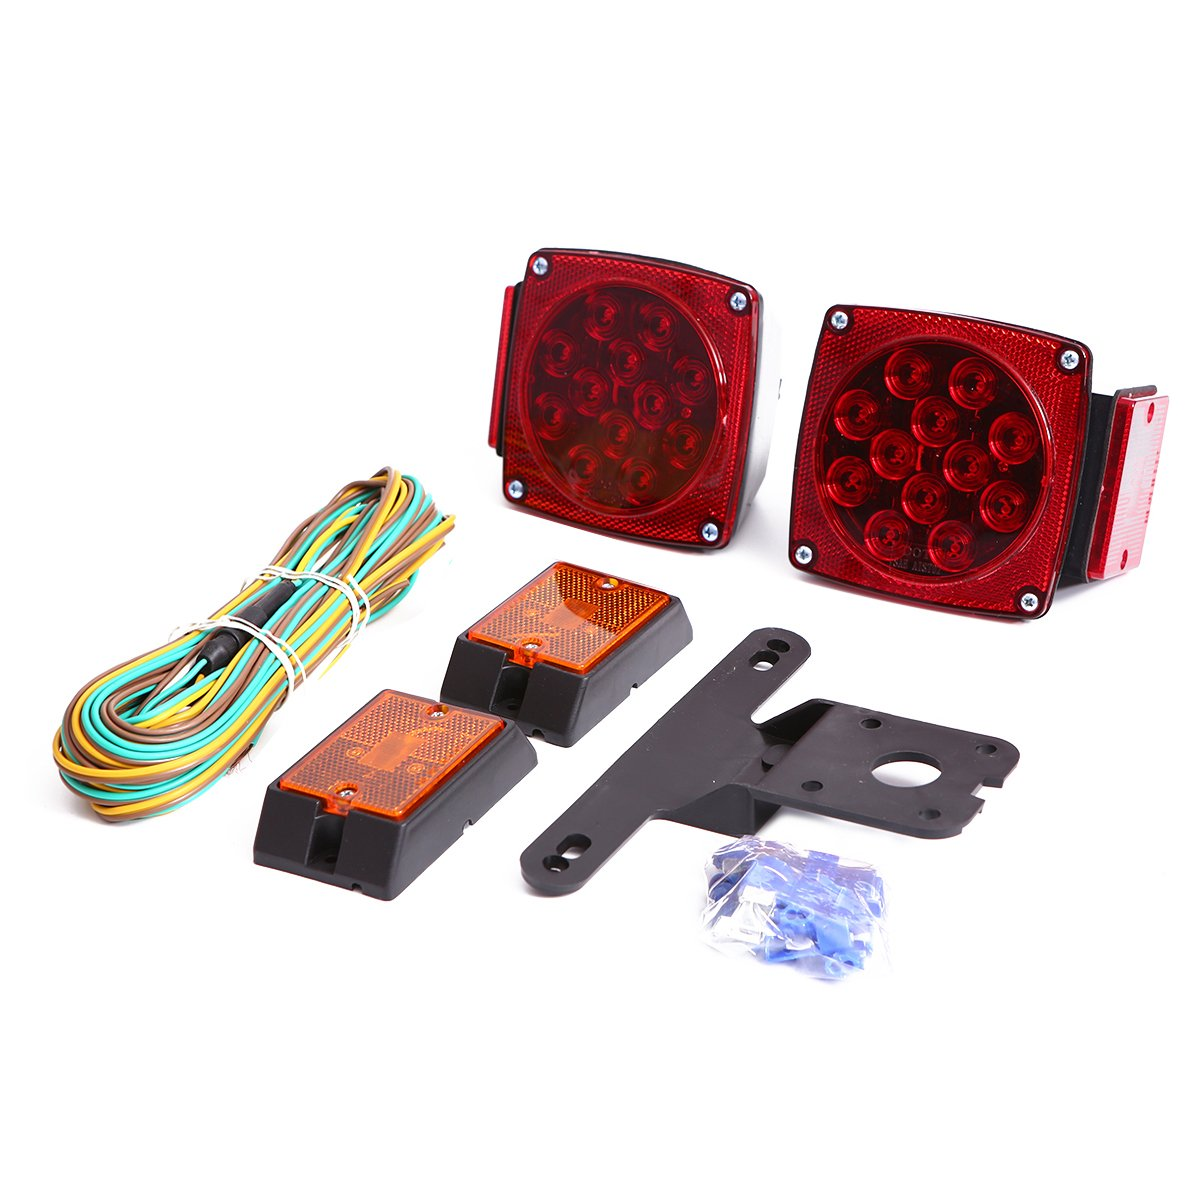 Czc Auto 12v Led Submersible Trailer Tail Light Kit For Source Assembly Motorcycle On Wiring Under 80 Inch Boat Rv Marine Automotive